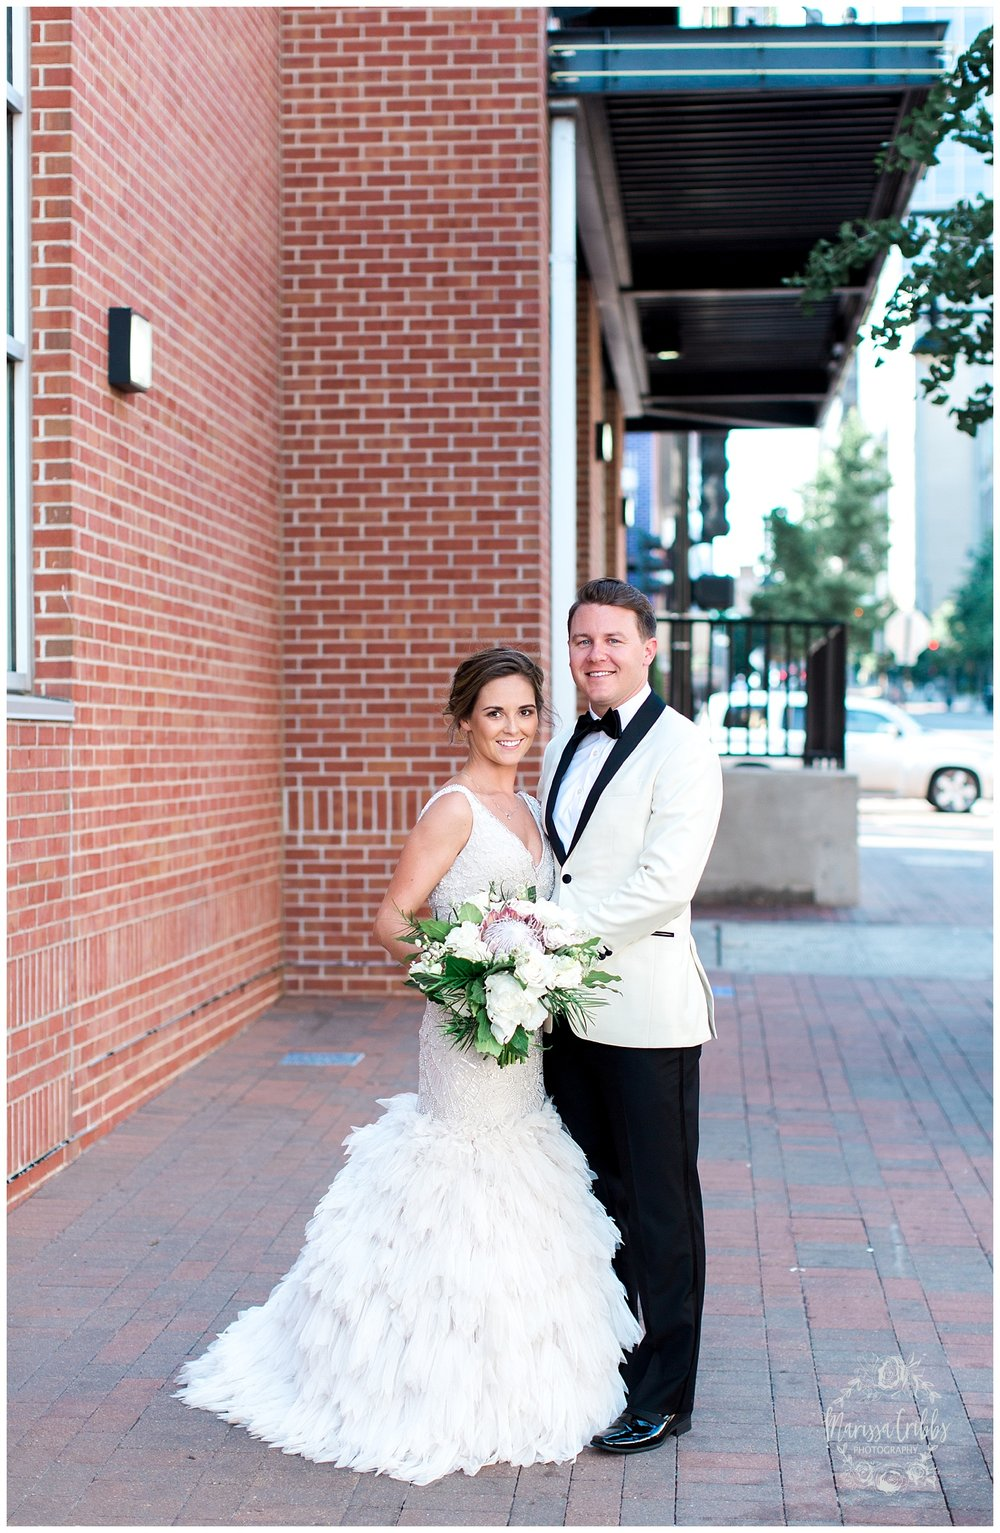 Haley & Steven Reception | The Gallery Event Space | Marissa Cribbs Photography | KC Wedding Photographers_1585.jpg